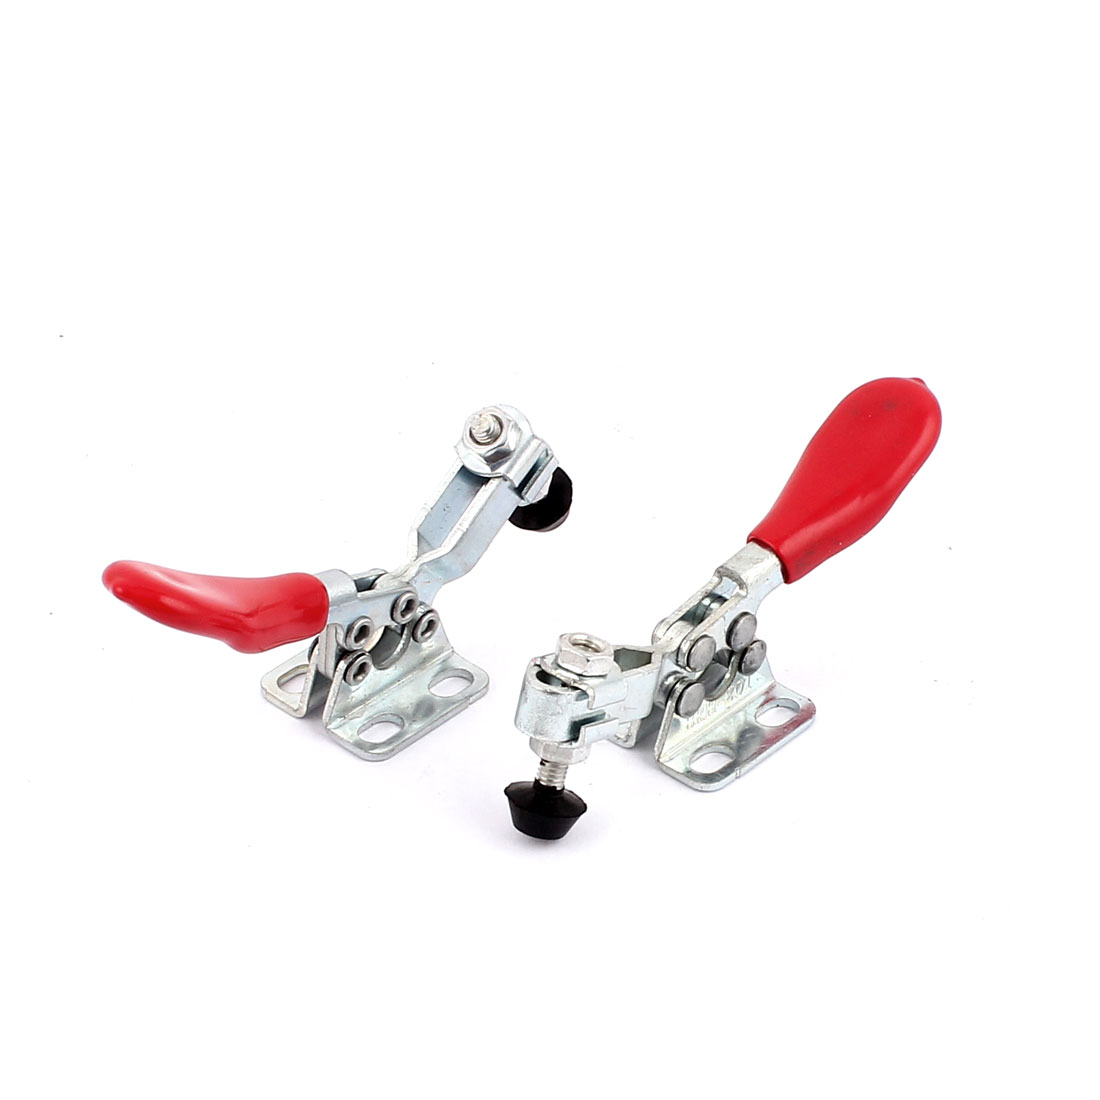 2pcs 201 Horizontal Hold Quick Toggle Clamp Hand Tool Release Red Silver Tone